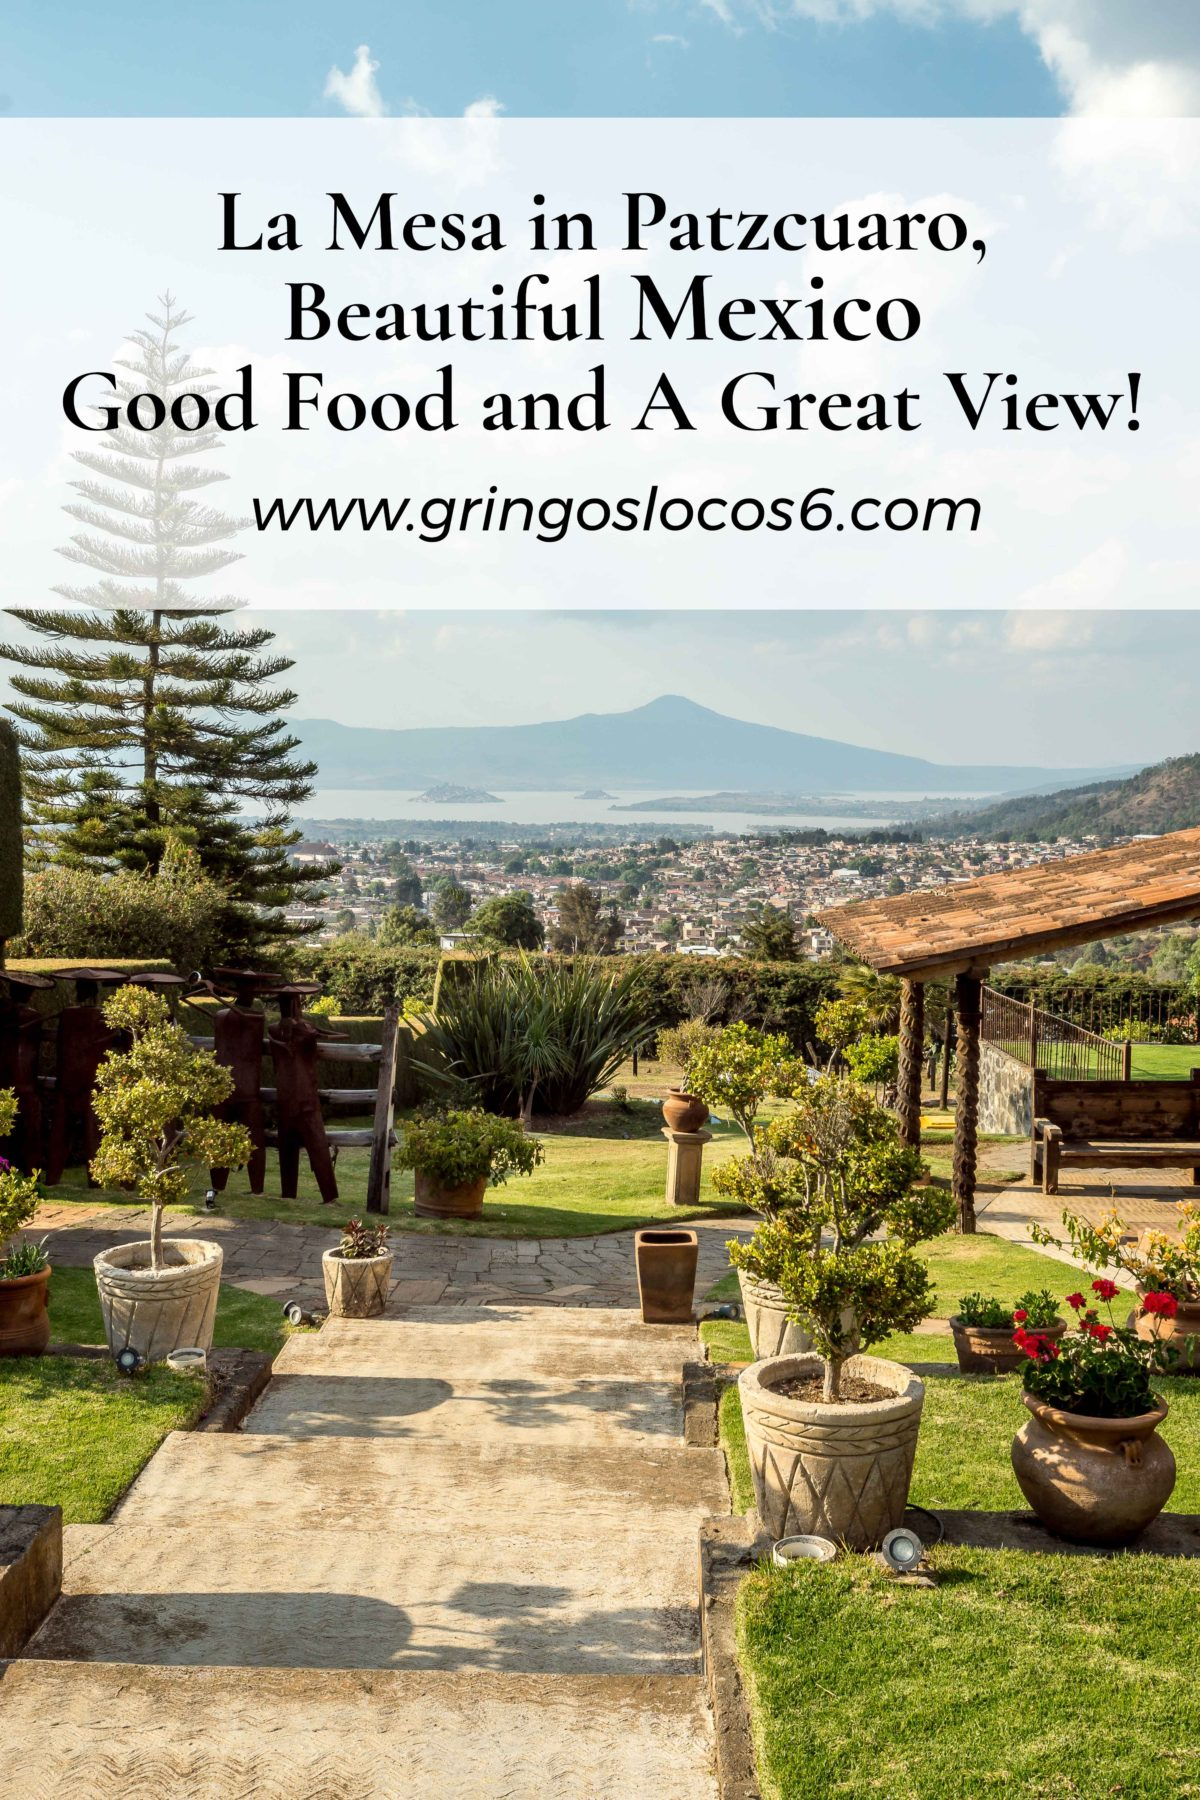 La Mesa has a restaurant, RV sites, an area for weddings or fiestas, and a small farm. We saw lots of baby animals and a very friendly and curious horse :-) La Mesa is located on a hill overlooking Patzcuaro and the island of Janitzio. The view is spectacular!